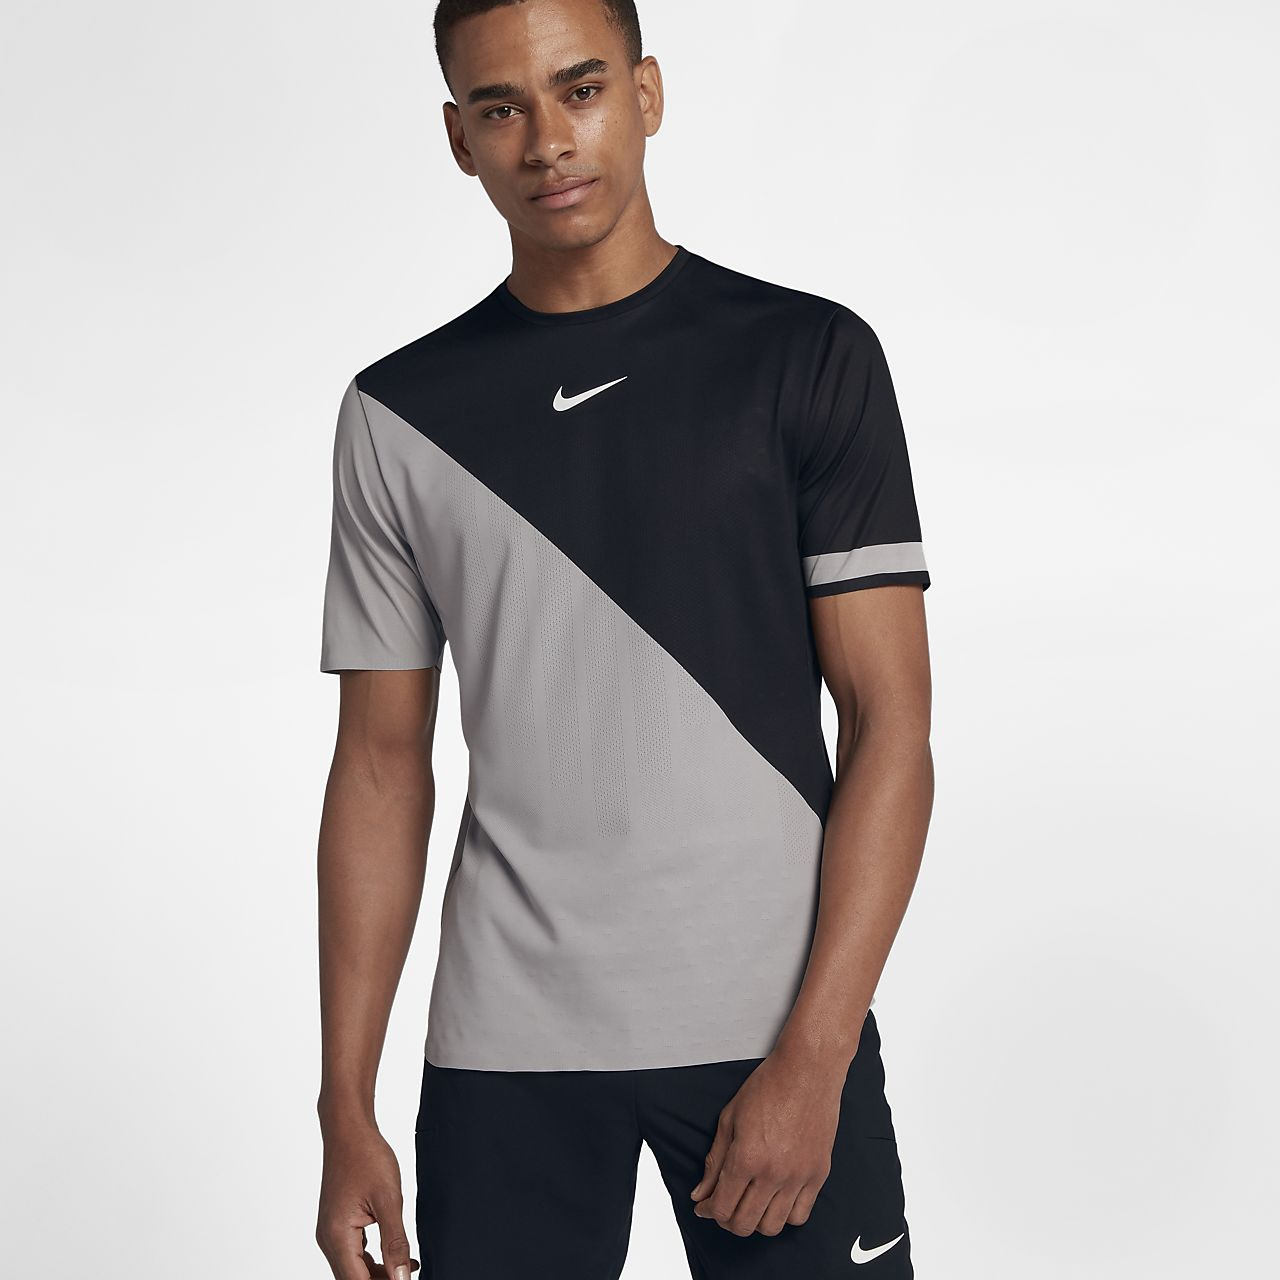 ... NikeCourt Zonal Cooling Challenger Men's Short Sleeve Tennis Top